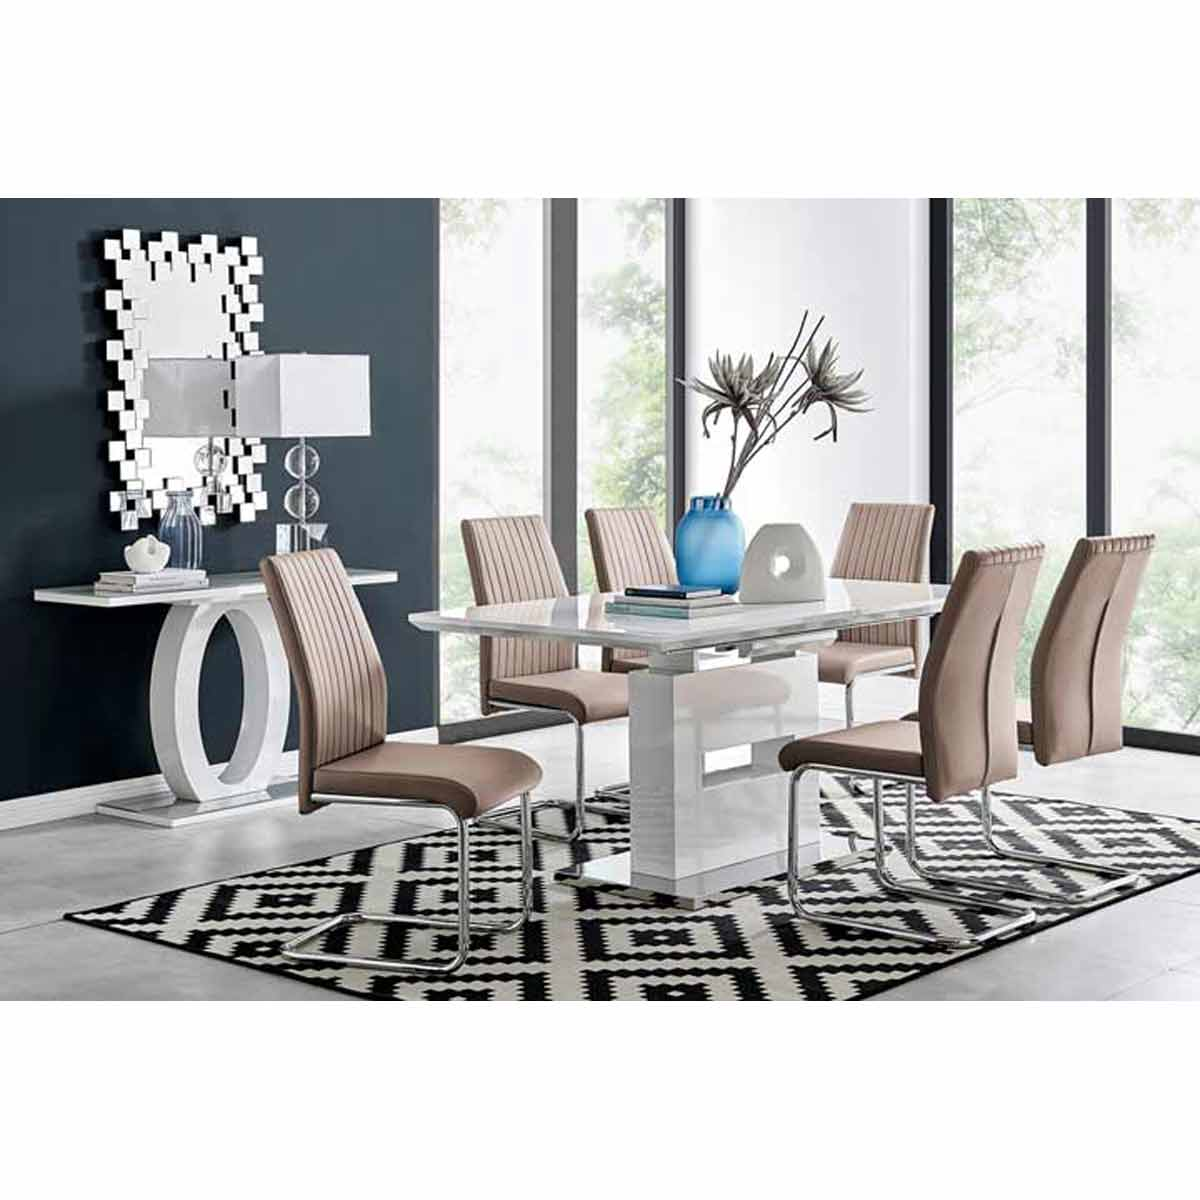 Furniture Box Arezzo Large Extending Dining Table and 6 Cappuccino Lorenzo Chairs